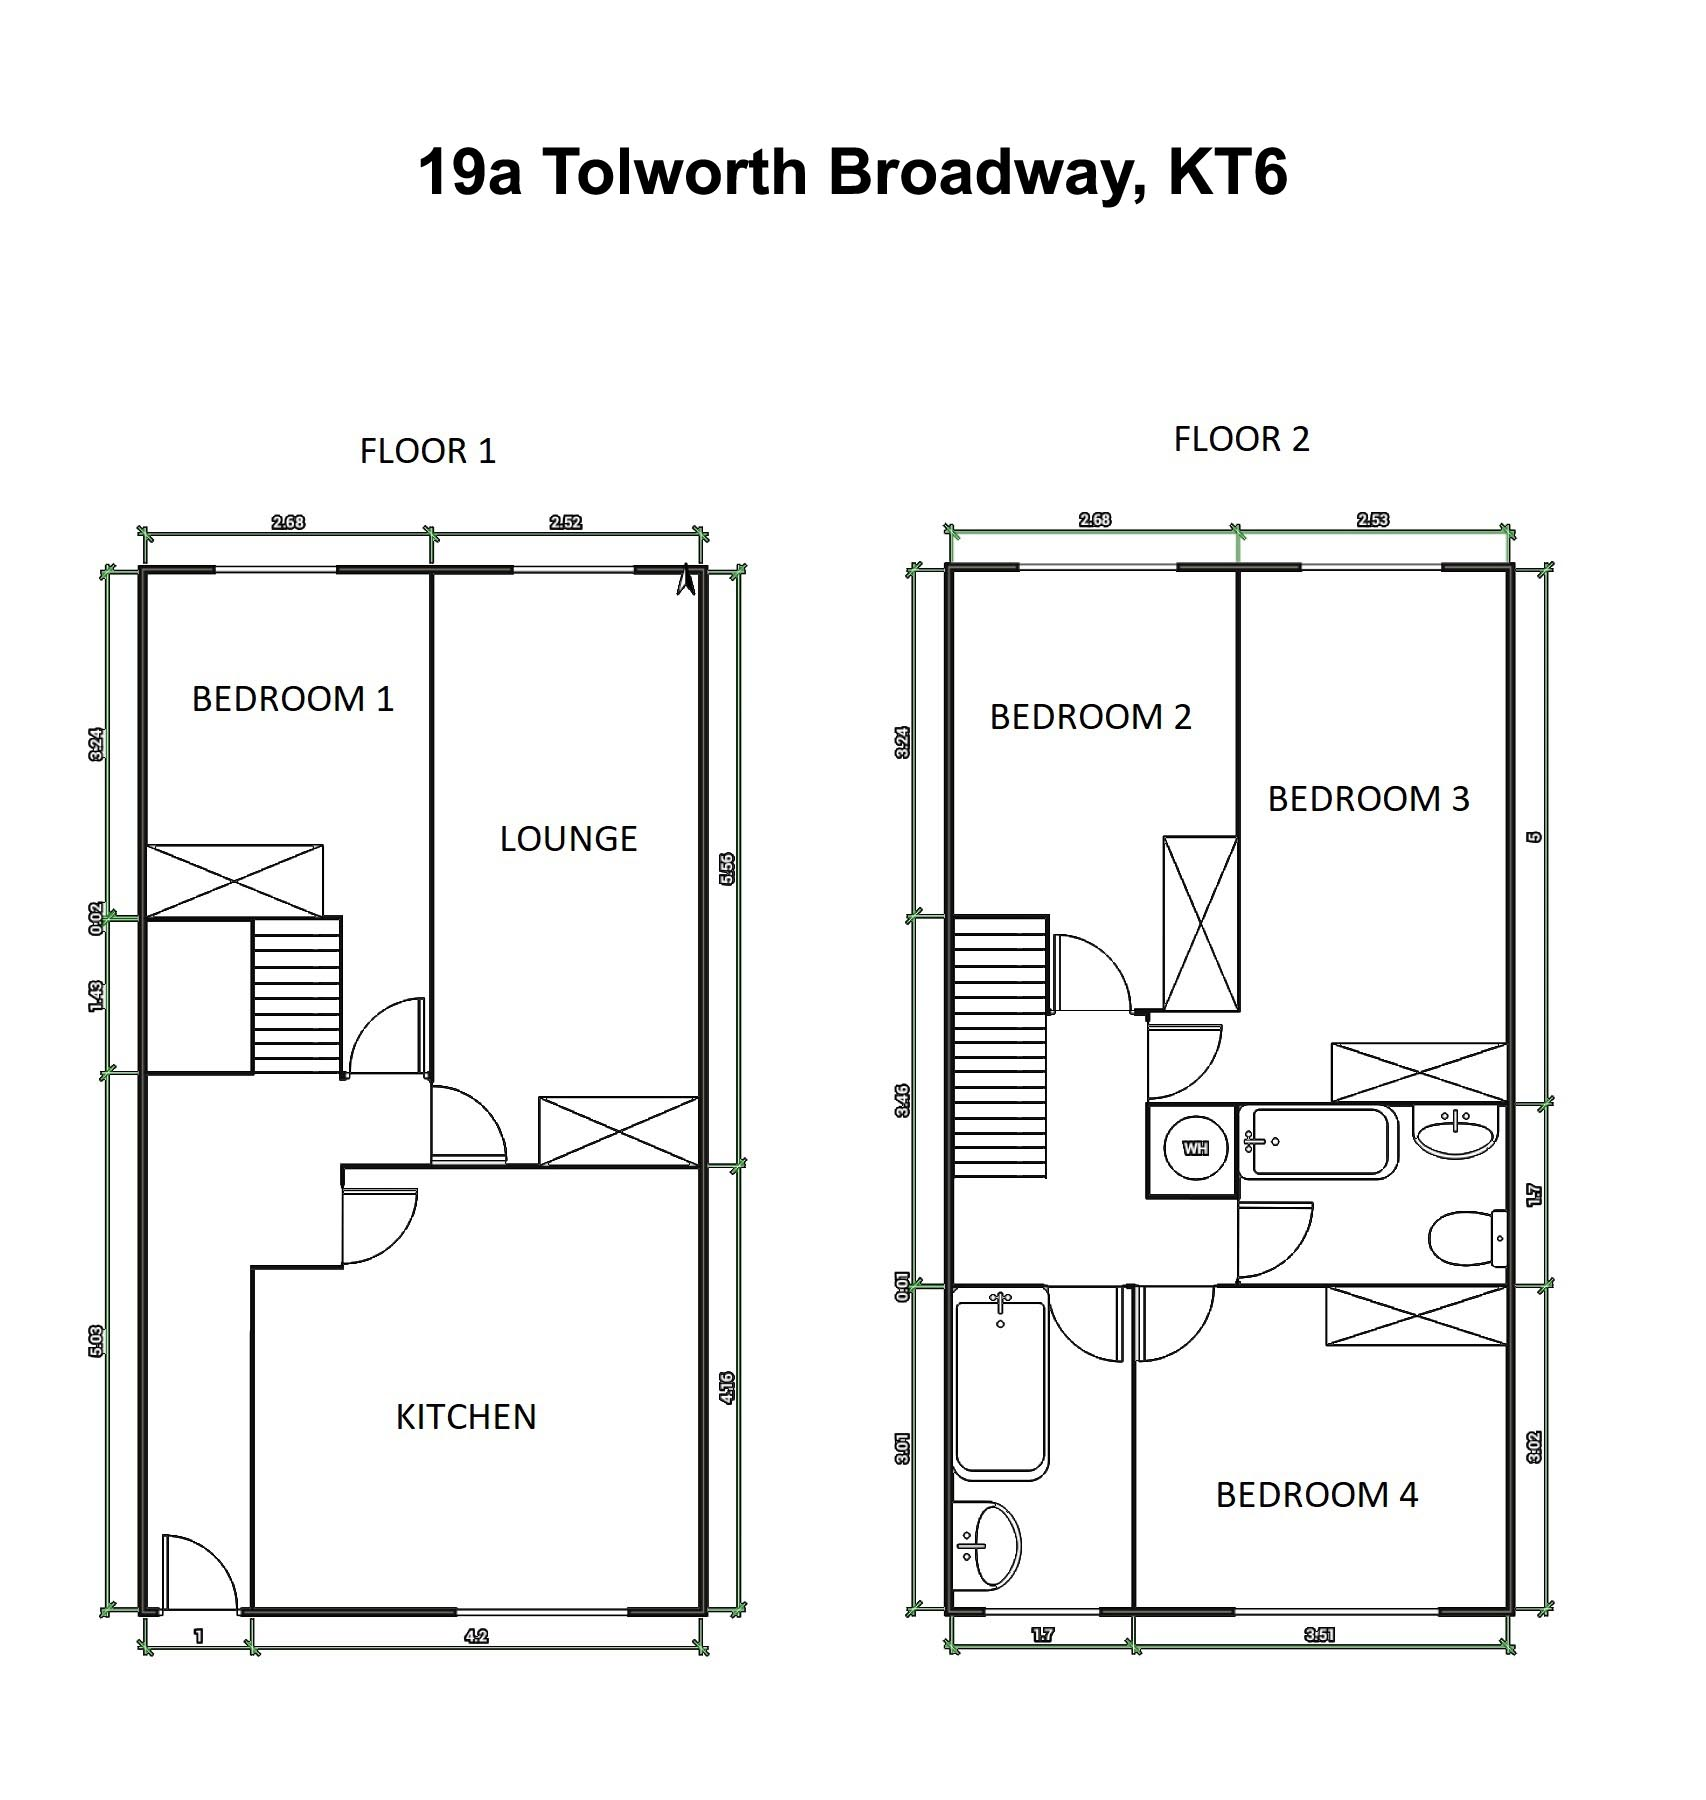 Tolworth Broadway 19a – Floor Plans